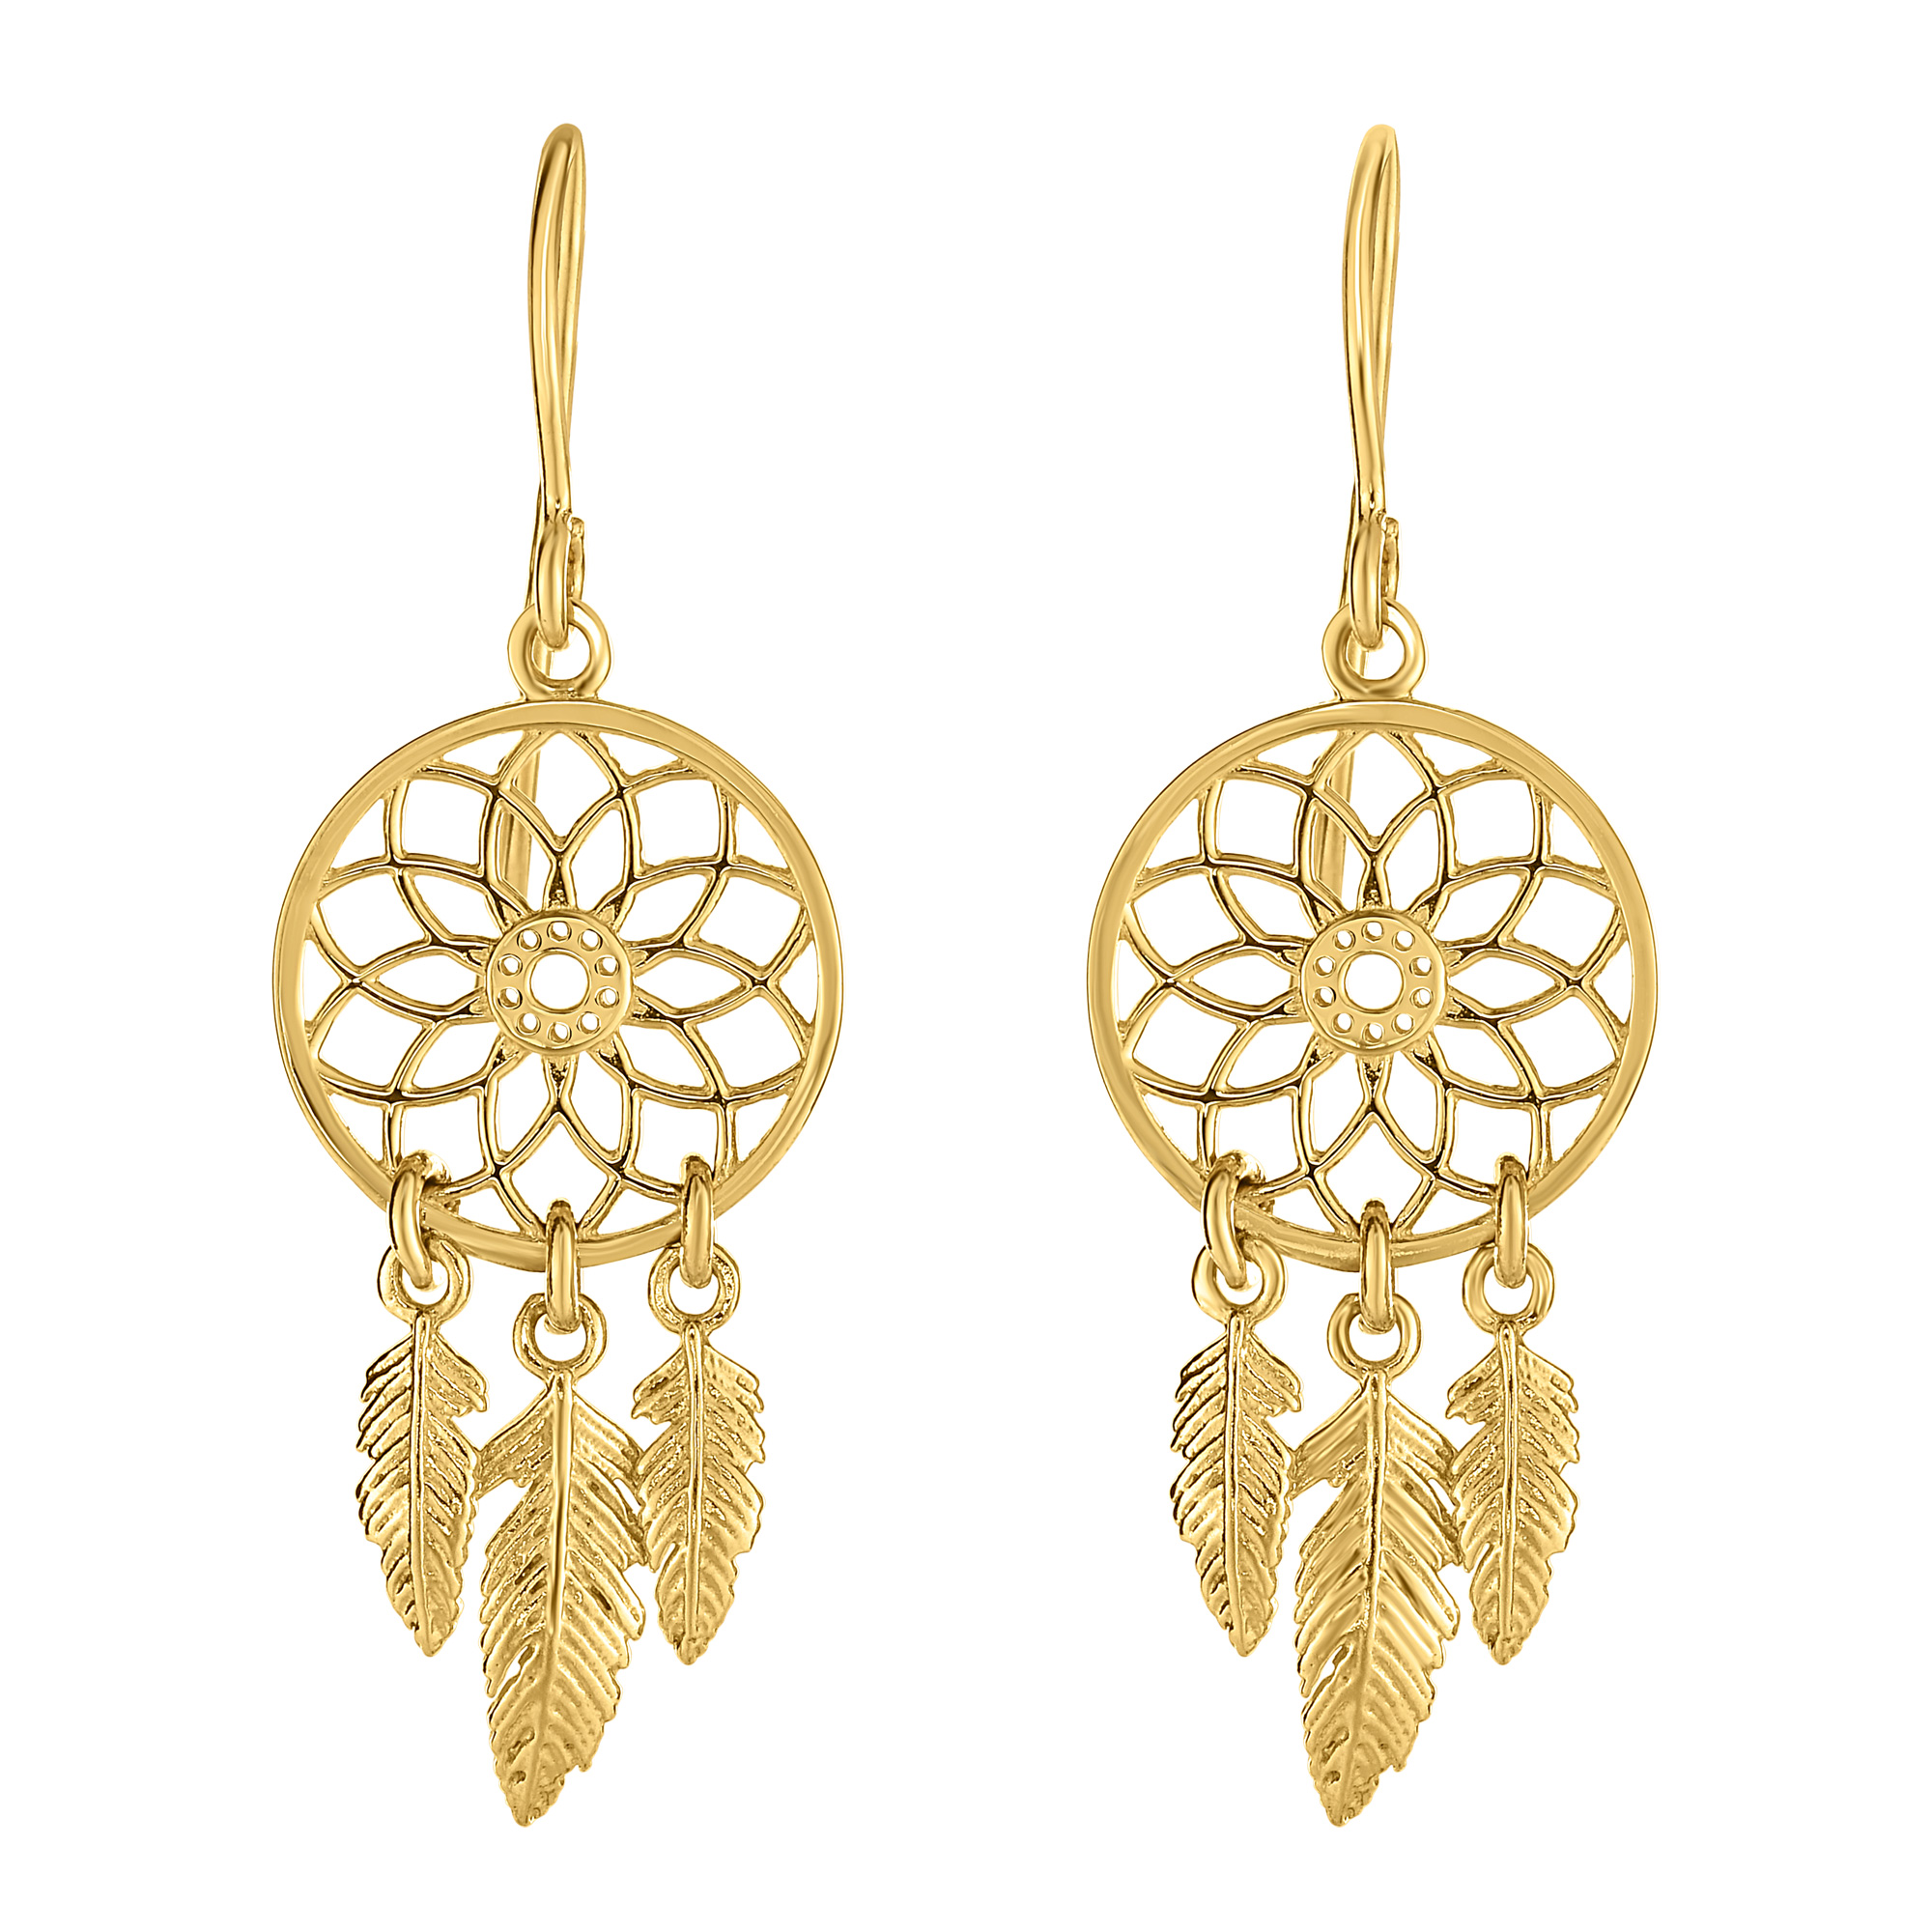 mina chandelier img earrings jewellery pree brulee products